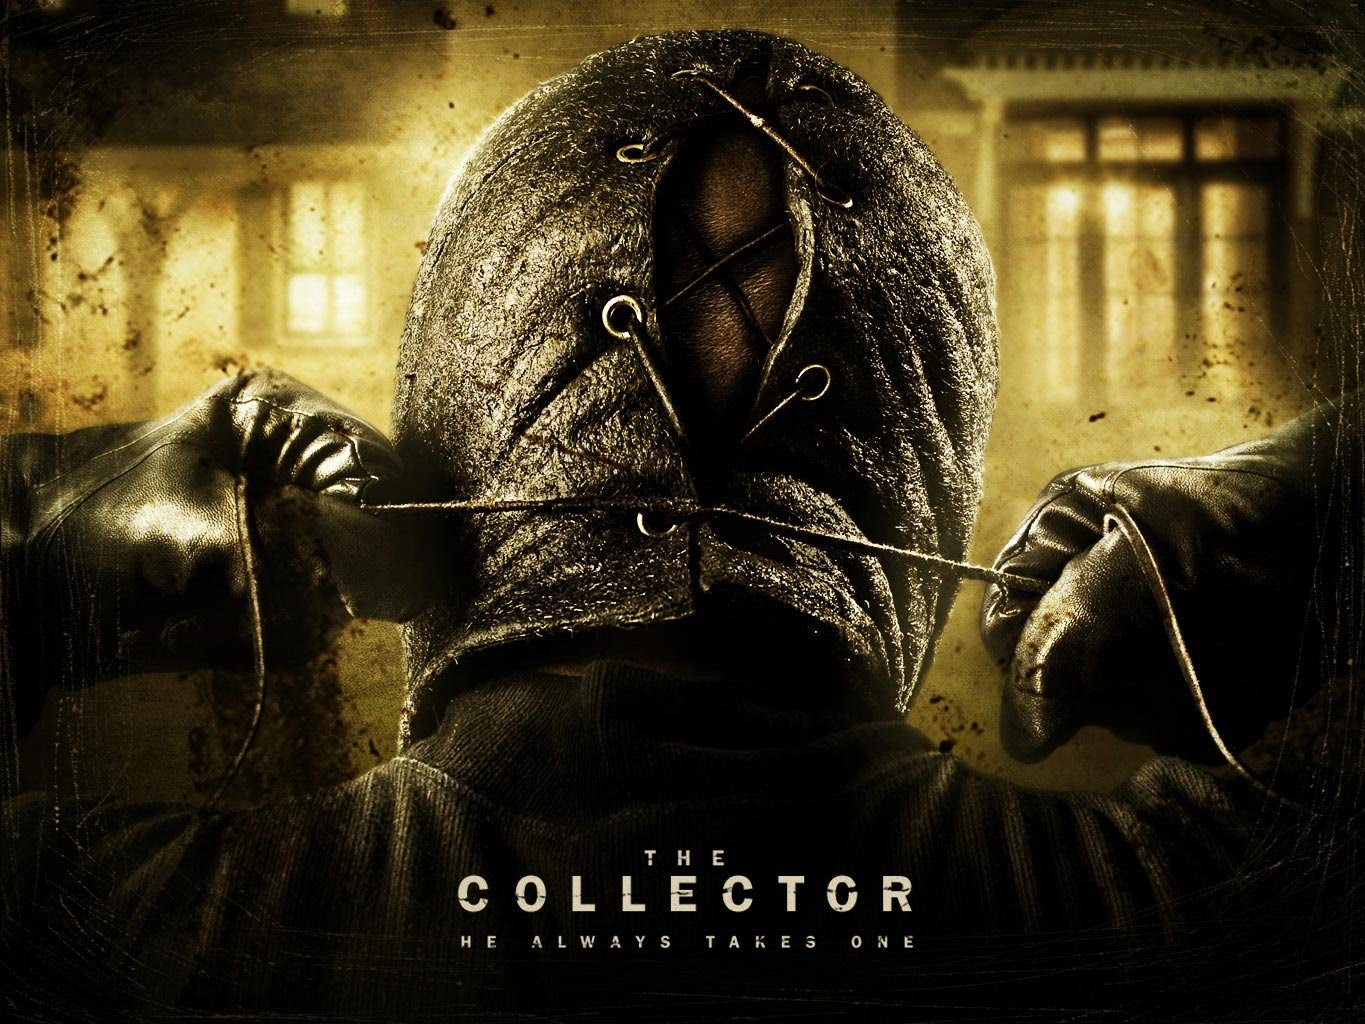 18 THE COLLECTOR: Thief gets trapped in house he's robbing... by a masked murderer. Been meaning to see this forever. #31HorrorFilms31Days https://t.co/0h1WsXRGhC